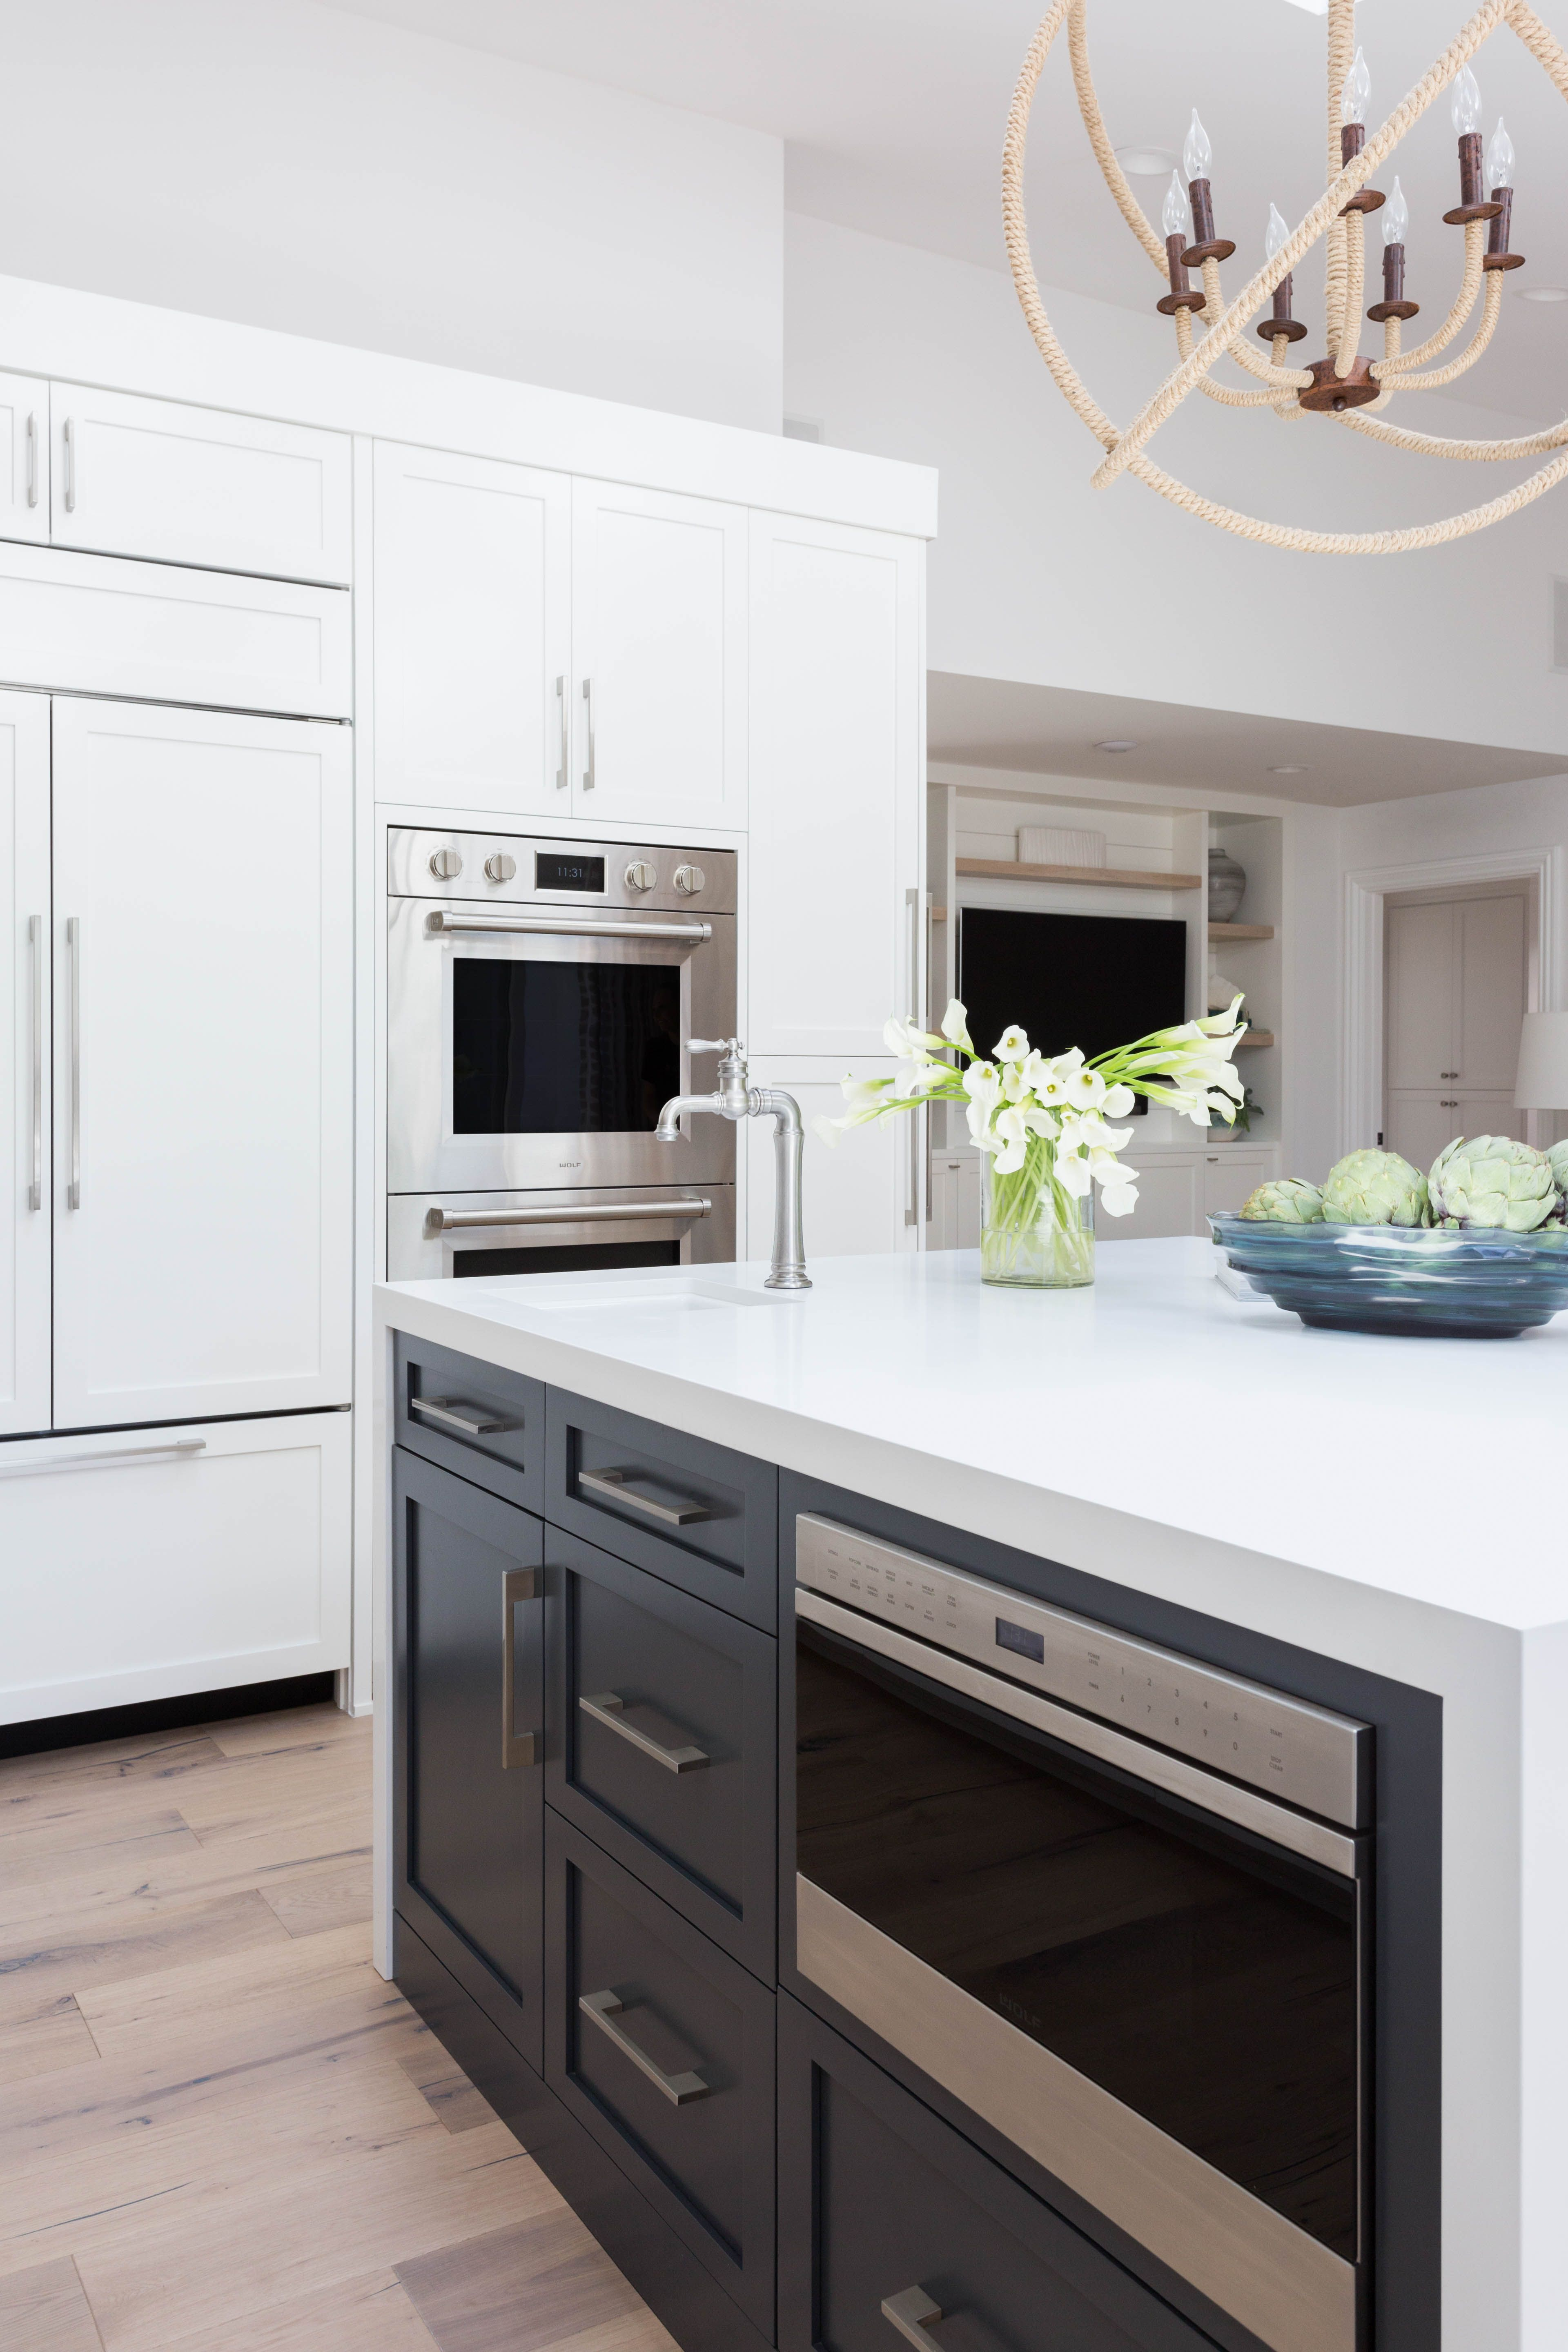 Project Dover Reveal Waterfall Countertop Kitchen Design